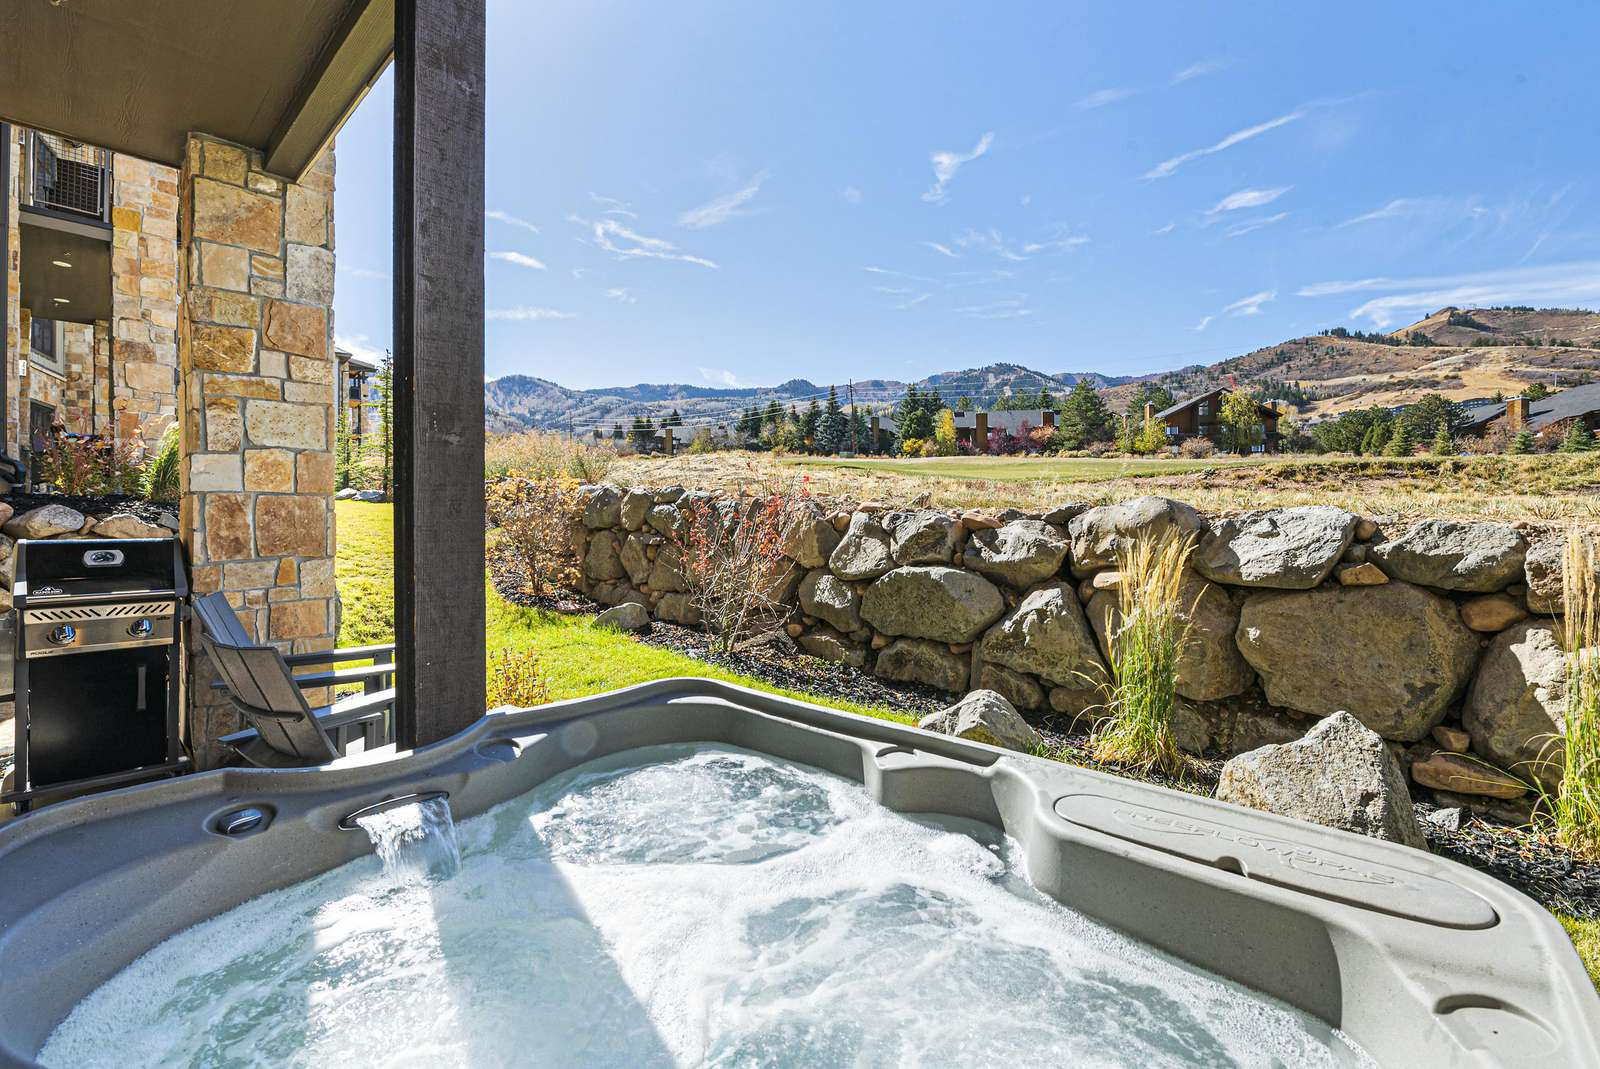 Private hot tub and barbeque grill with mountain views